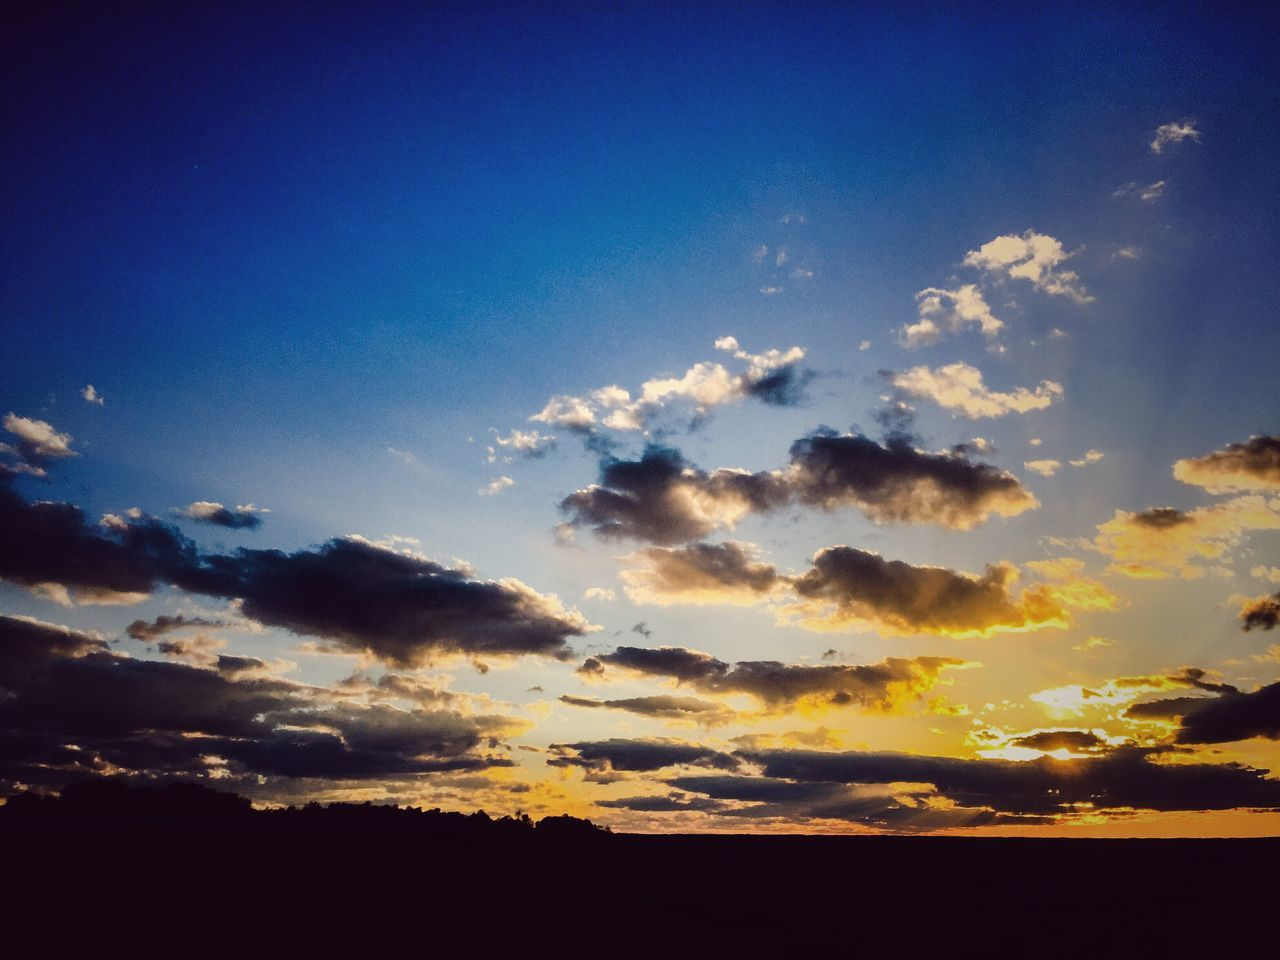 tranquility, nature, tranquil scene, sunset, beauty in nature, sky, scenics, silhouette, idyllic, cloud - sky, no people, blue, outdoors, day